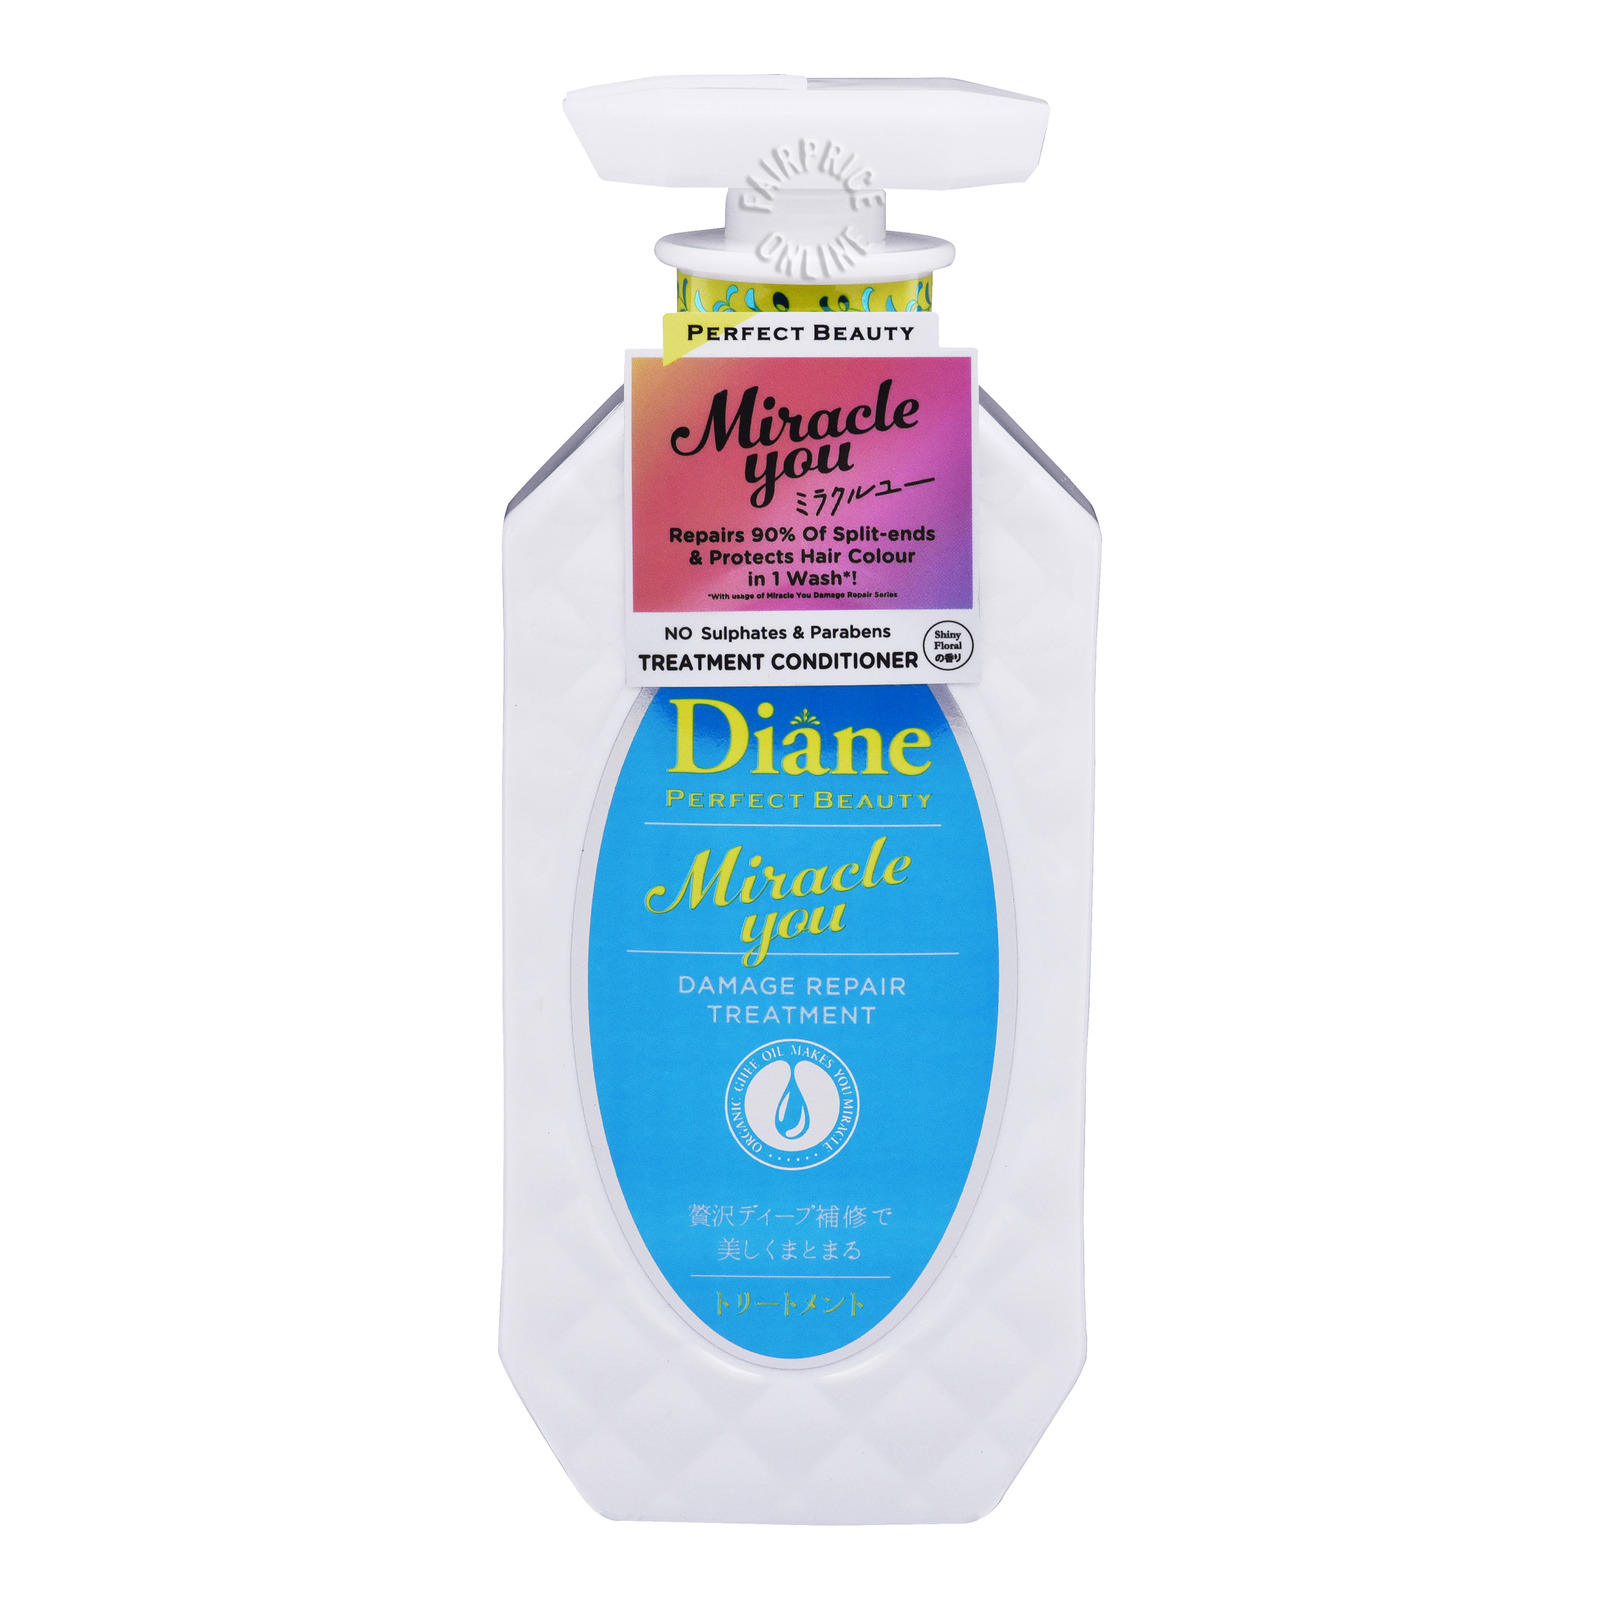 Moist Diane Miracle You Treatment - Damage Repair